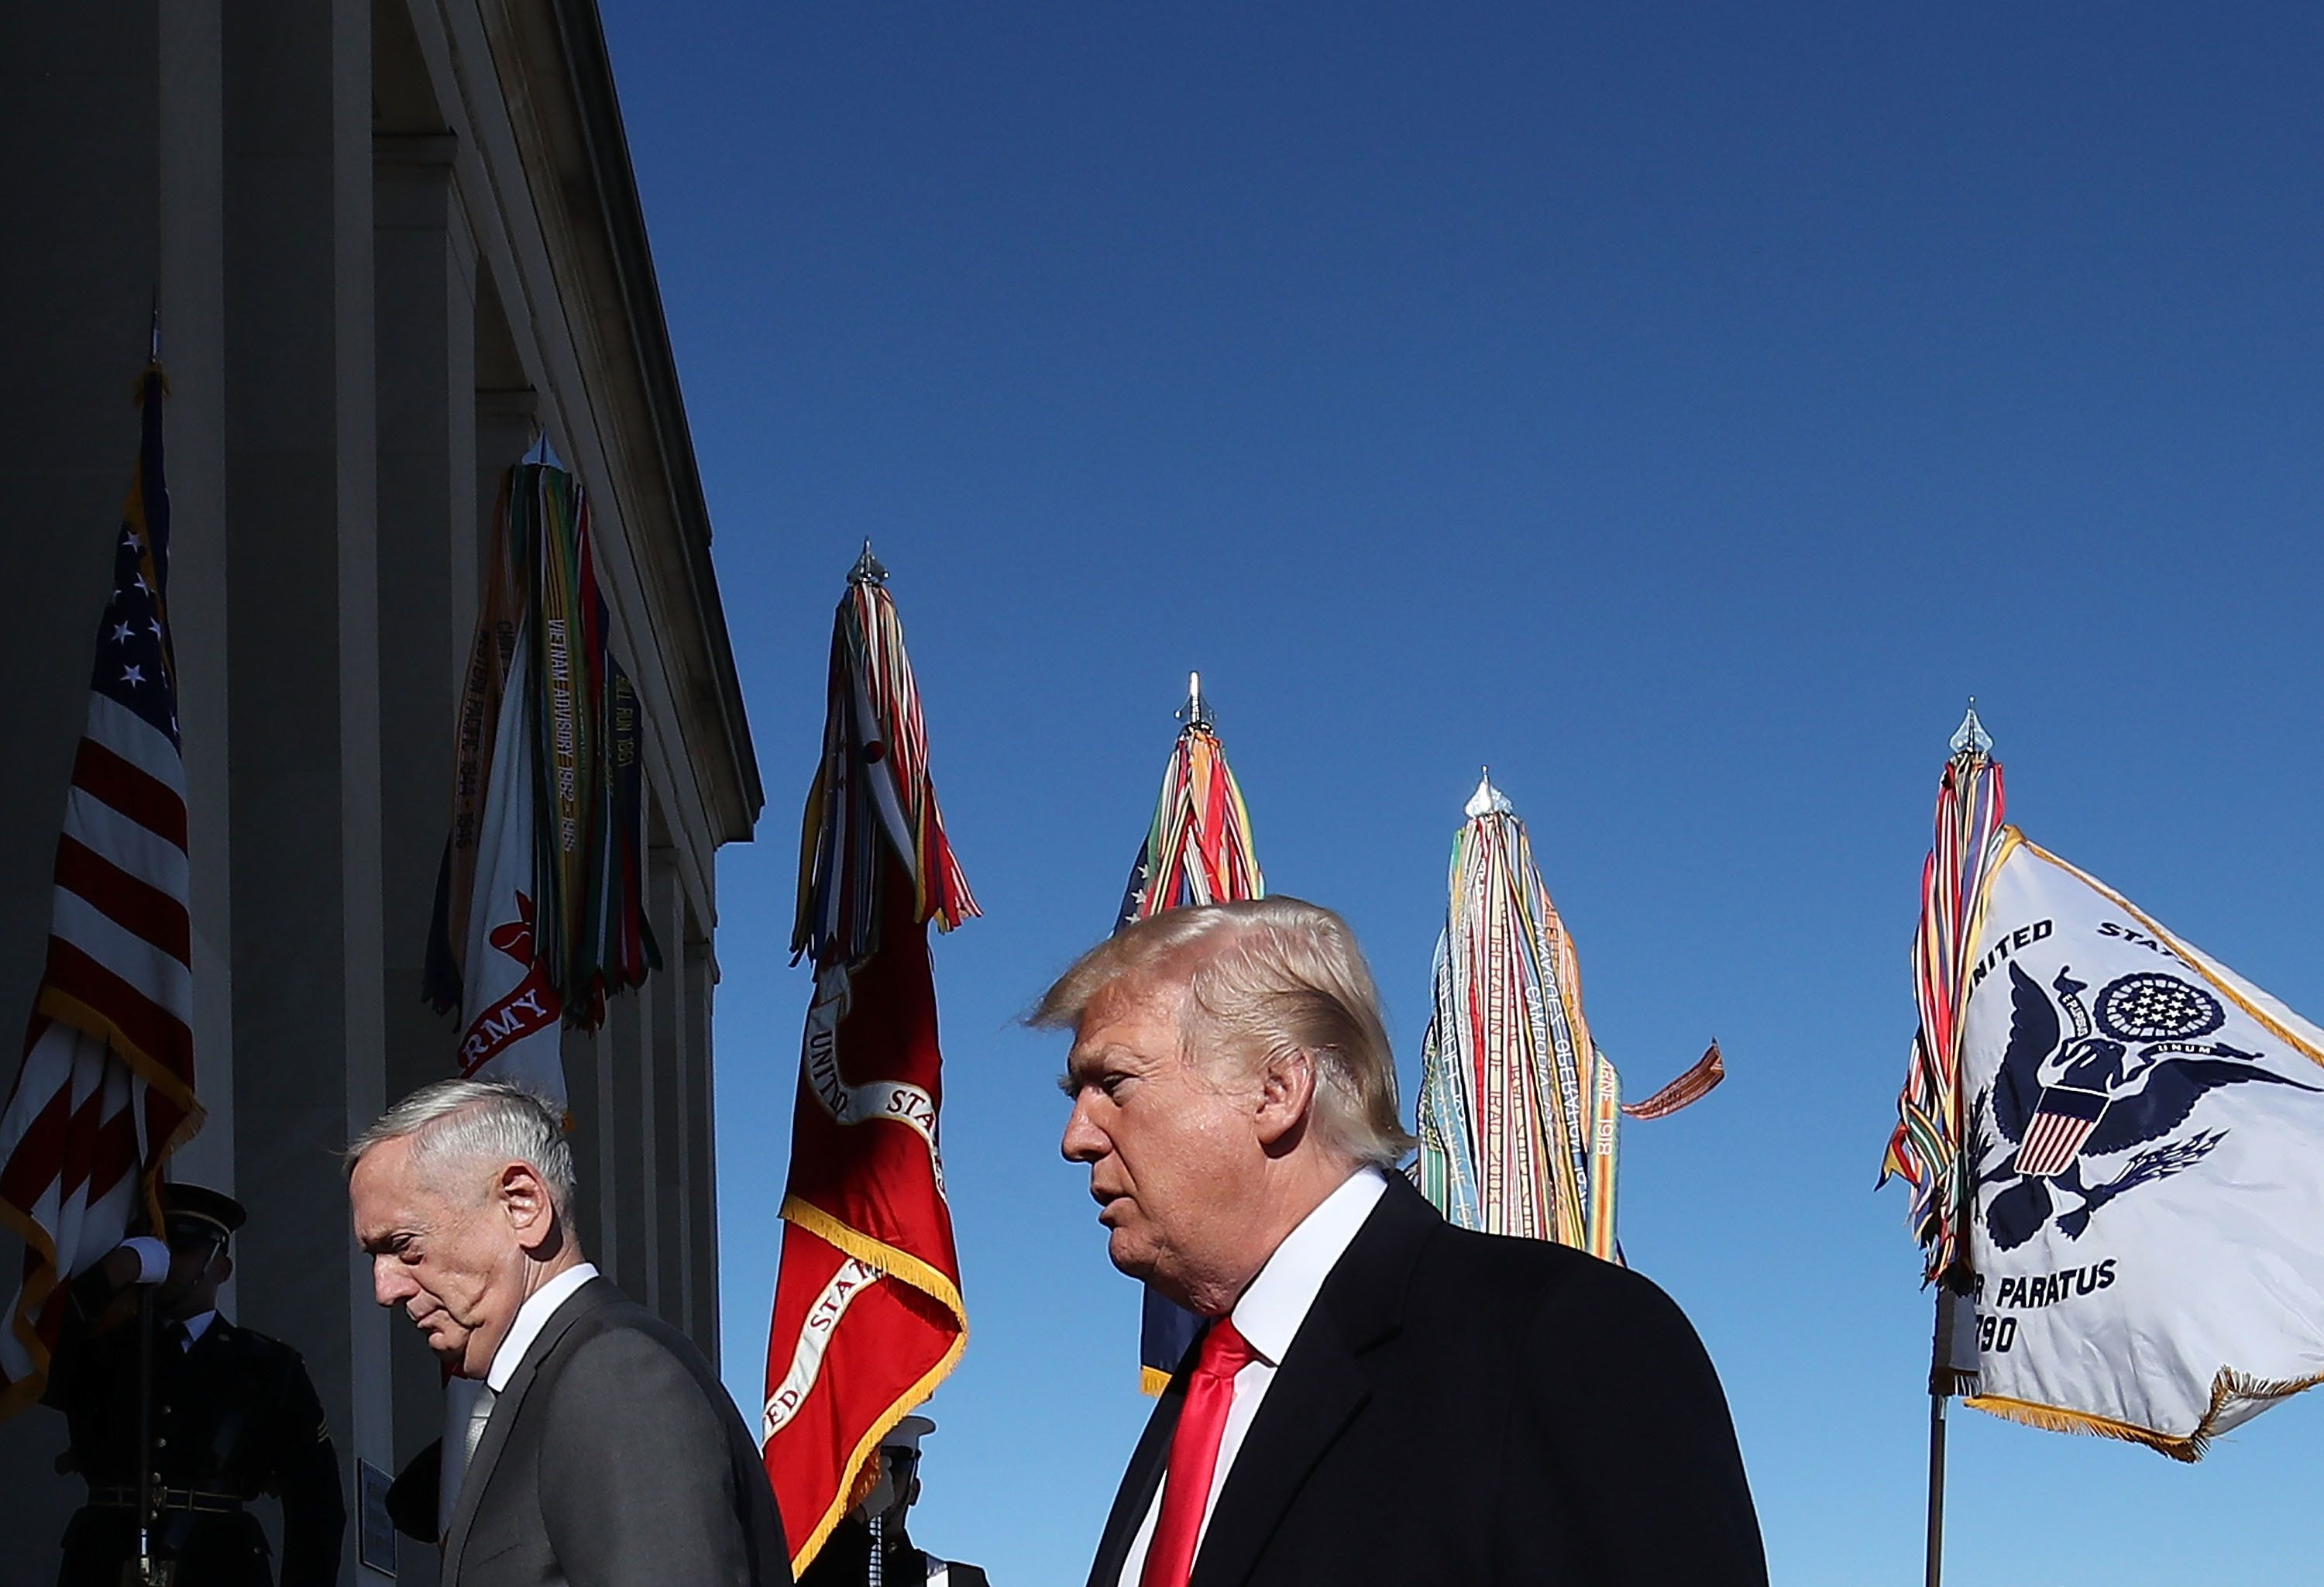 Trump orders Pentagon to start planning for GRAND MILITARY PARADE down Pennsylvania Ave